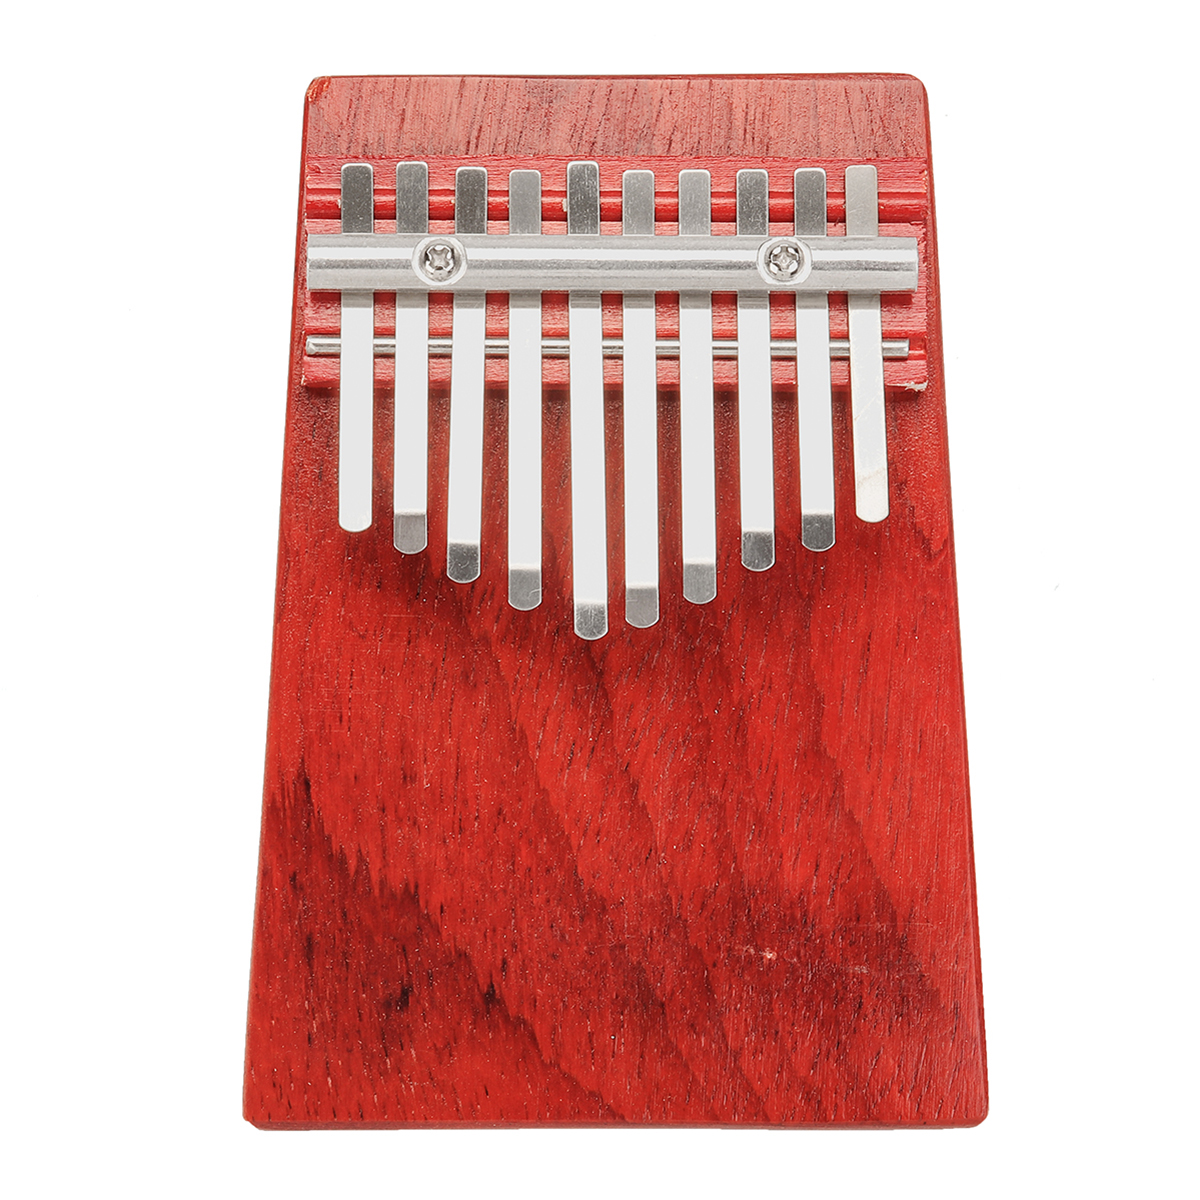 Meigar 10 Key Kalimba Thumb Piano Wooden Thumb Harp An African Thumb Piano For Kids Is A Perfect Introduction To Music The Traditional Kalimba Instrument Is Perfect For A Beginner